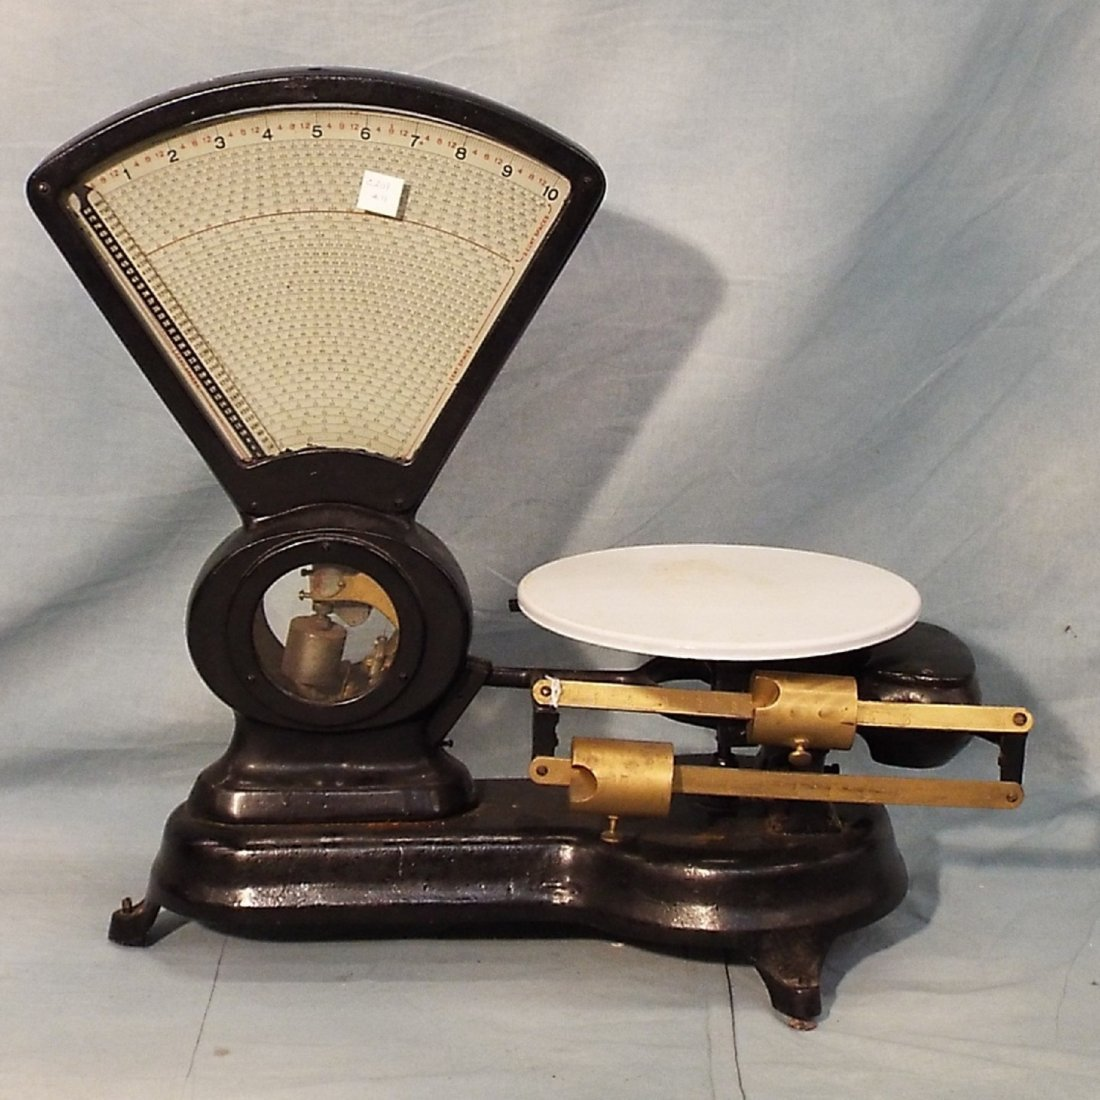 Antique Scale Made in The USA by Toledo